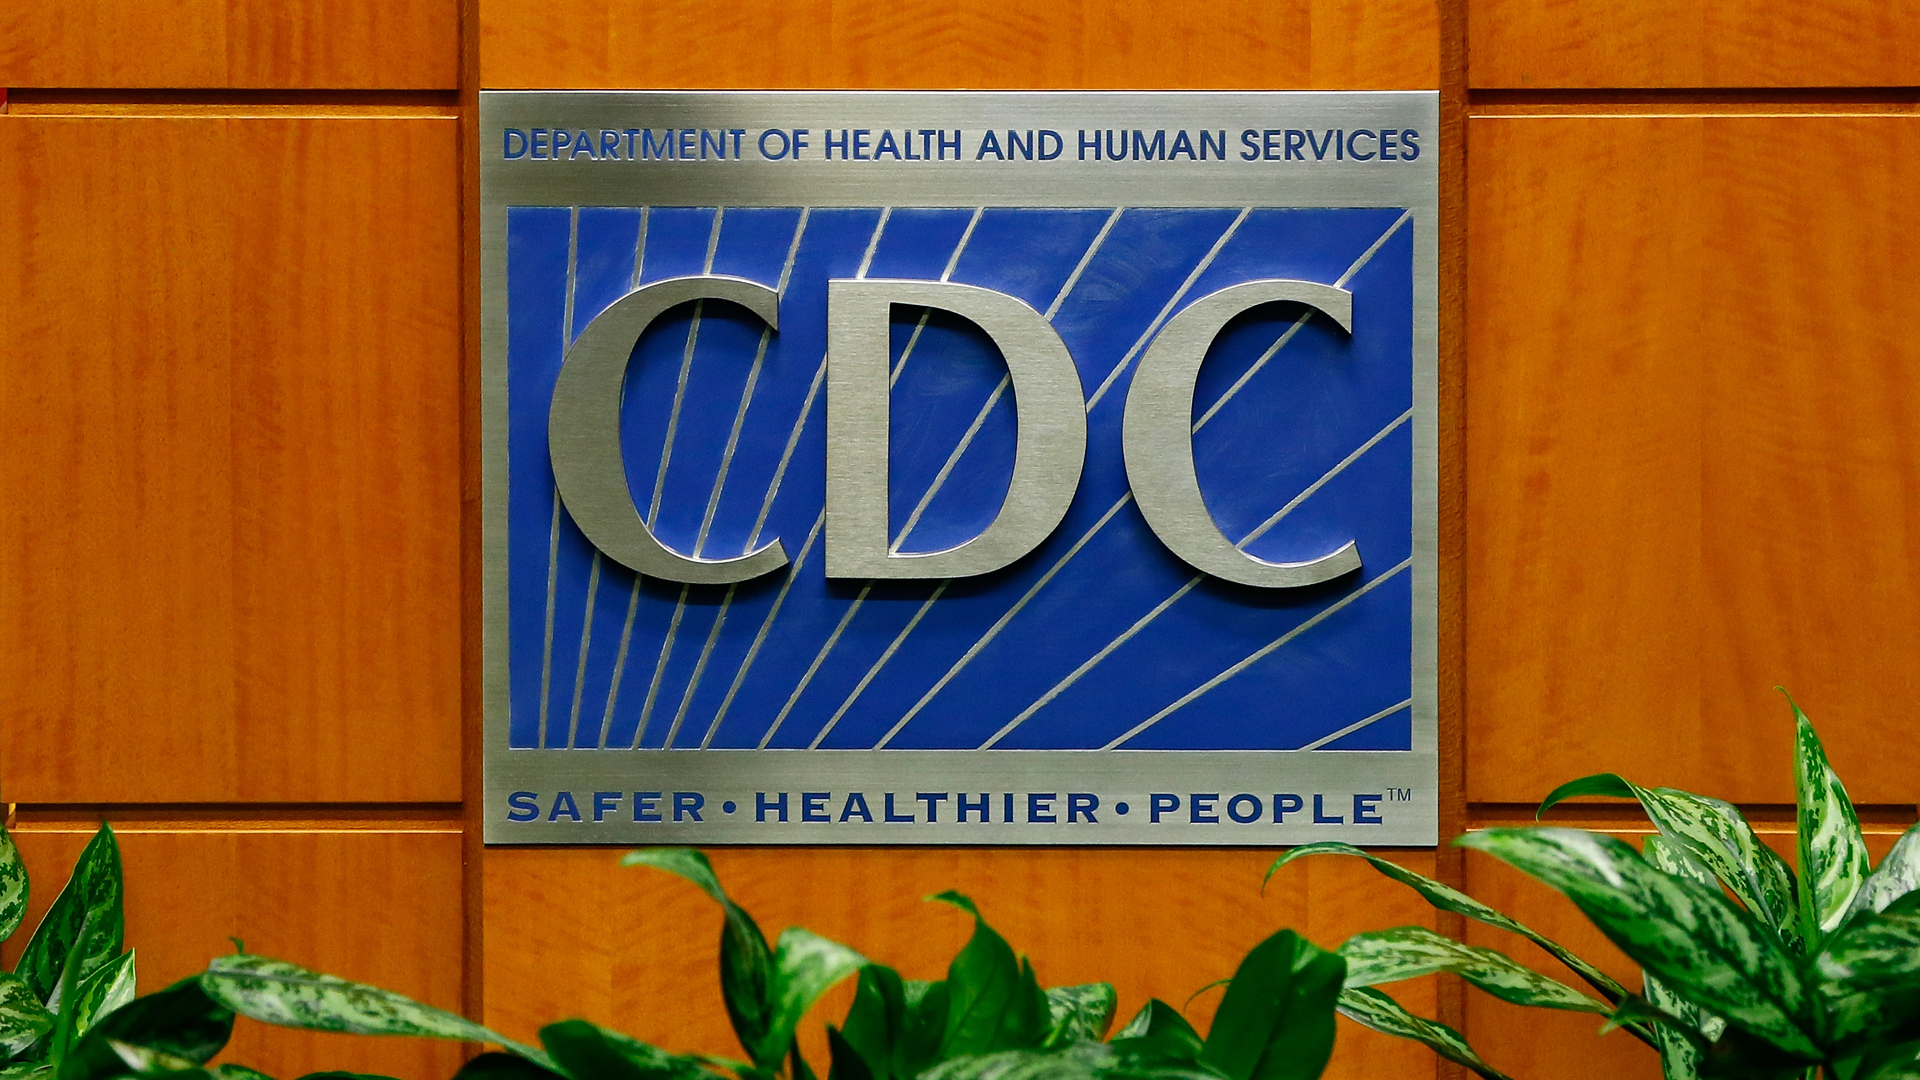 A podium with the logo for the Centers for Disease Control and Prevention at the Tom Harkin Global Communications Center on Oct. 5, 2014, in Atlanta. (Credit: Kevin C. Cox/Getty Images)